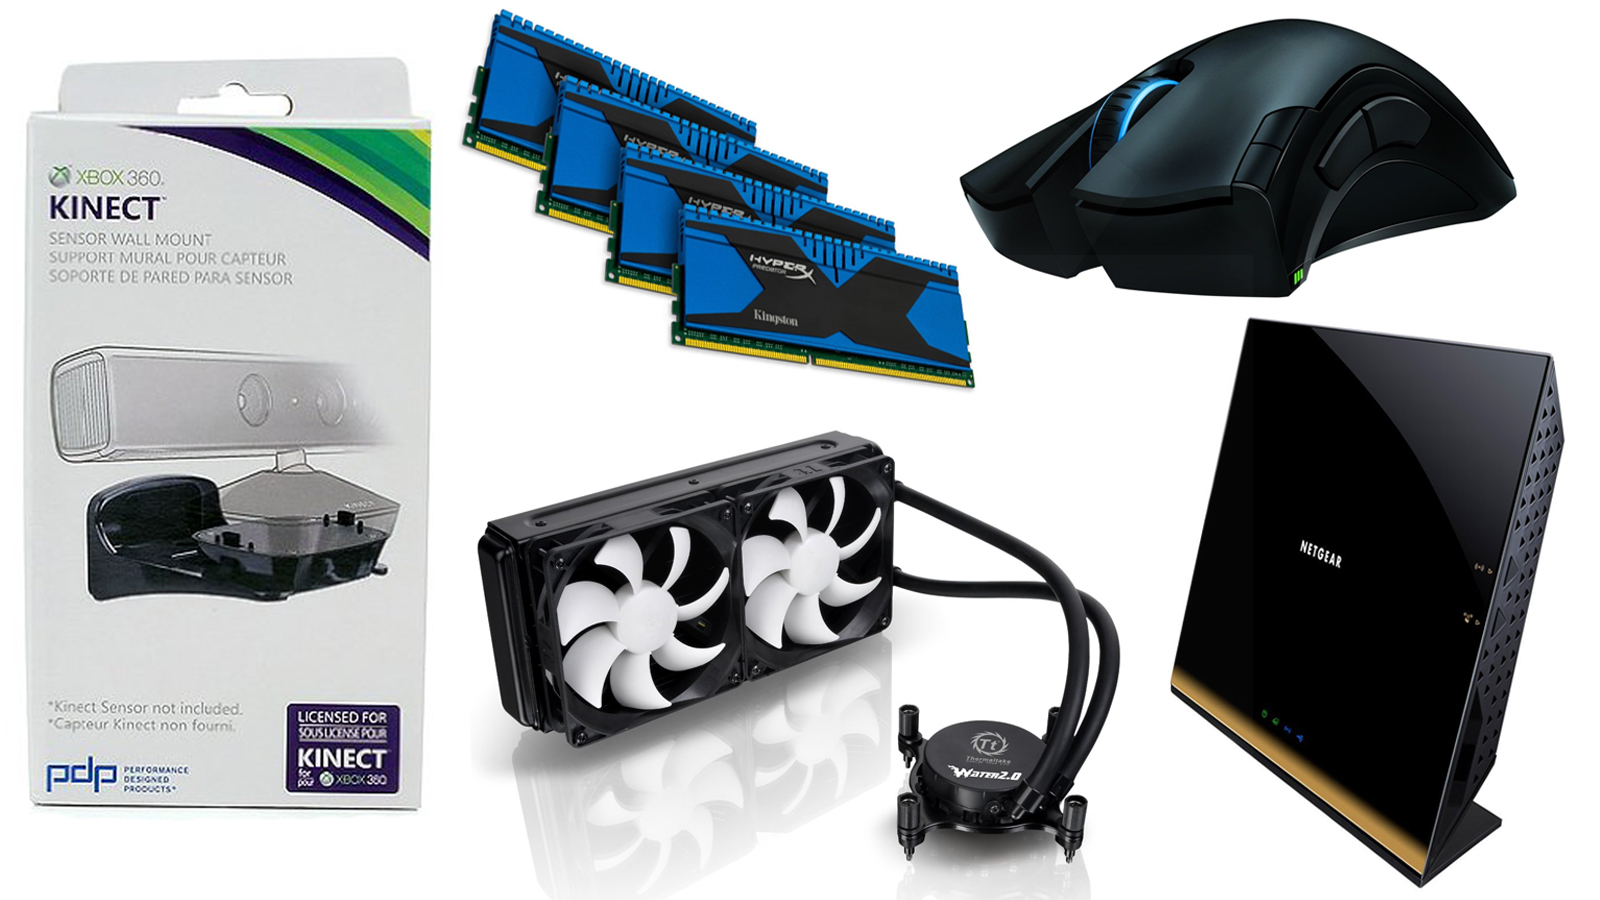 Gift Guide: Gifts For The Obsessive Gamer